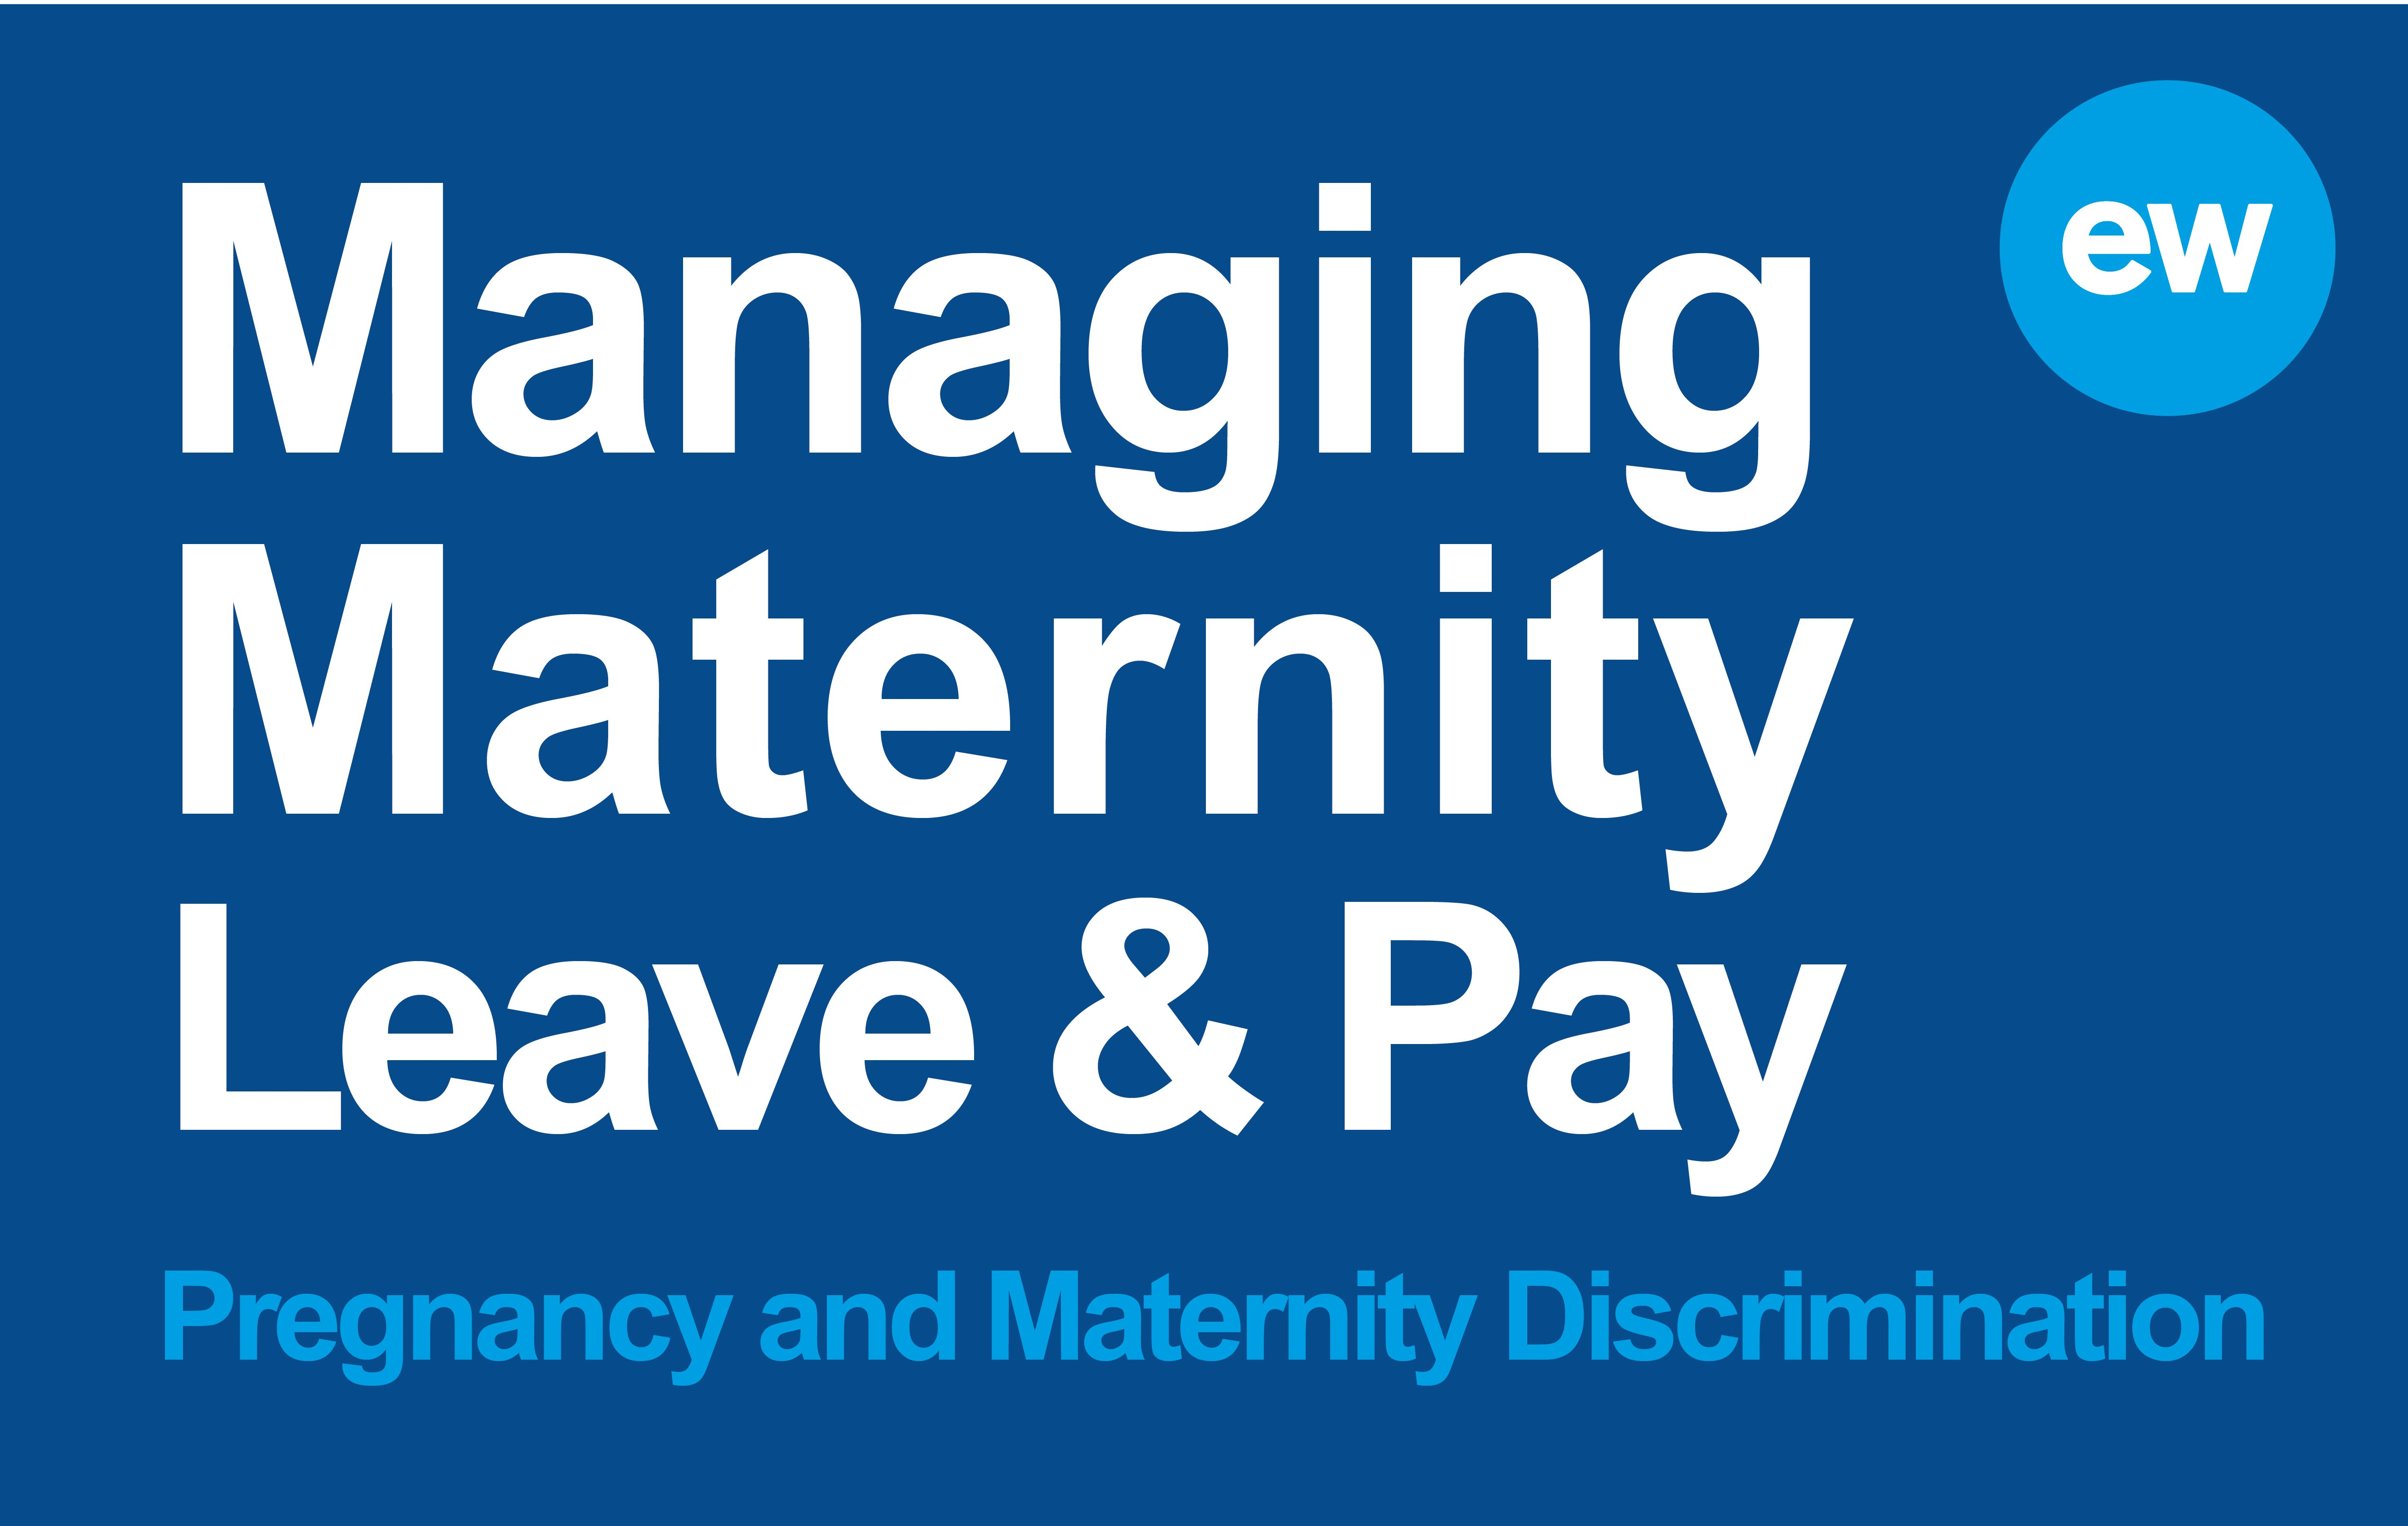 pregnancy and maternity discrimination